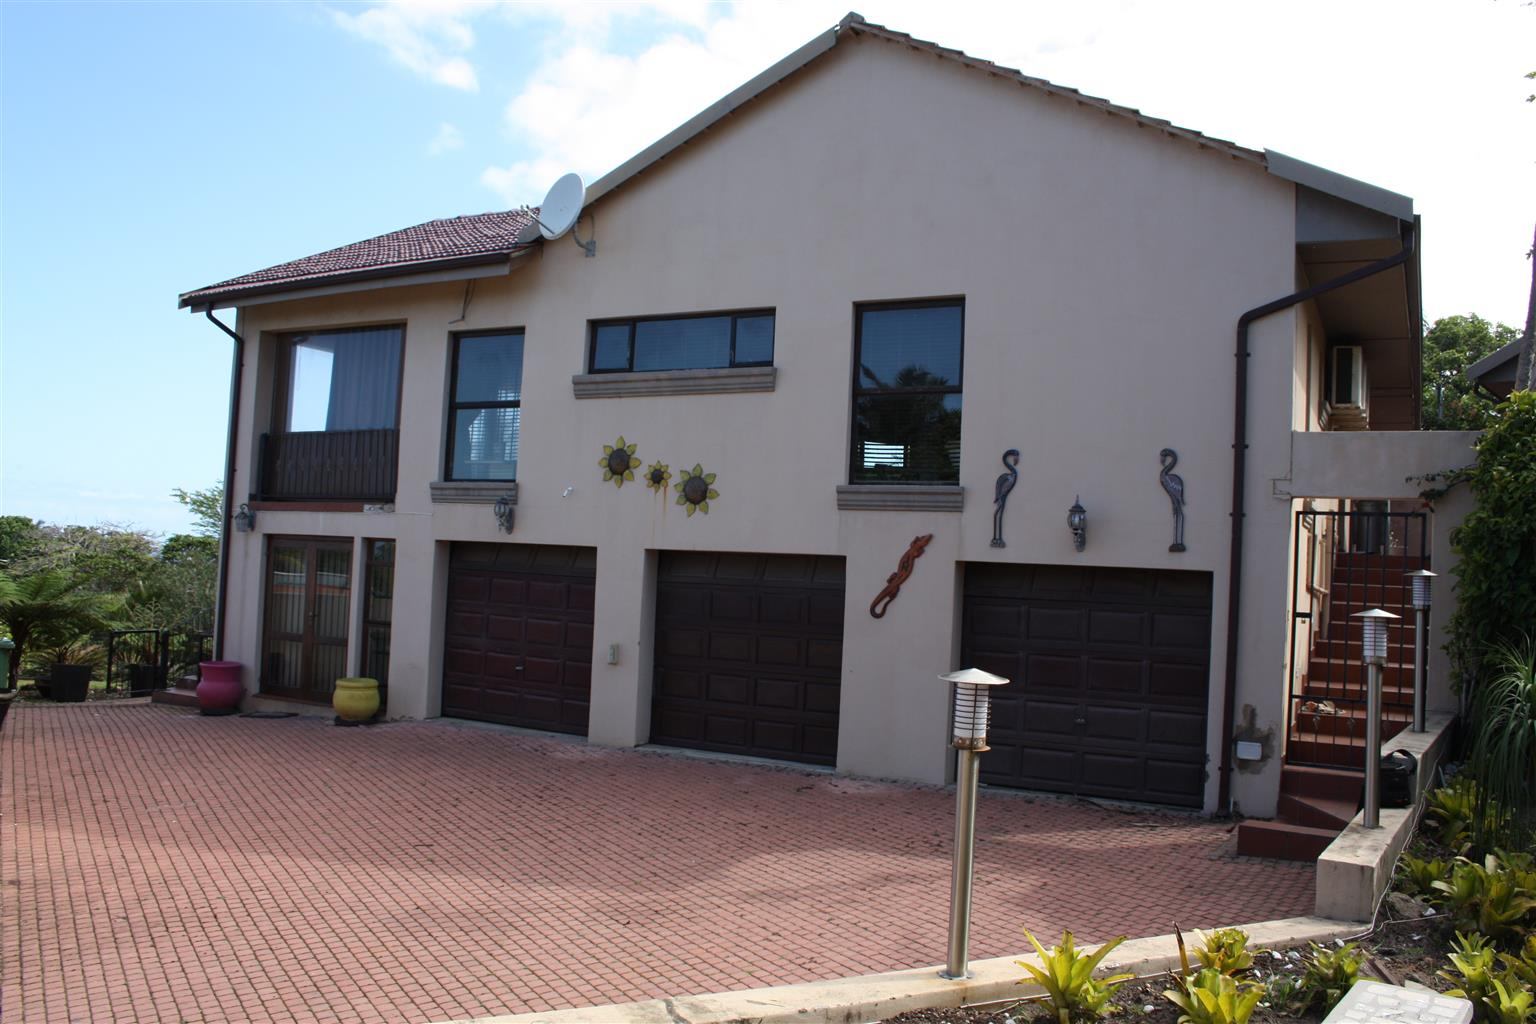 UVONGO LARGE 10 SLEEPER HOLIDAY HOME FOR RENT: WALK TO BEACH BEAUTIFUL SEA VIEWS( R4500 PER DAY)